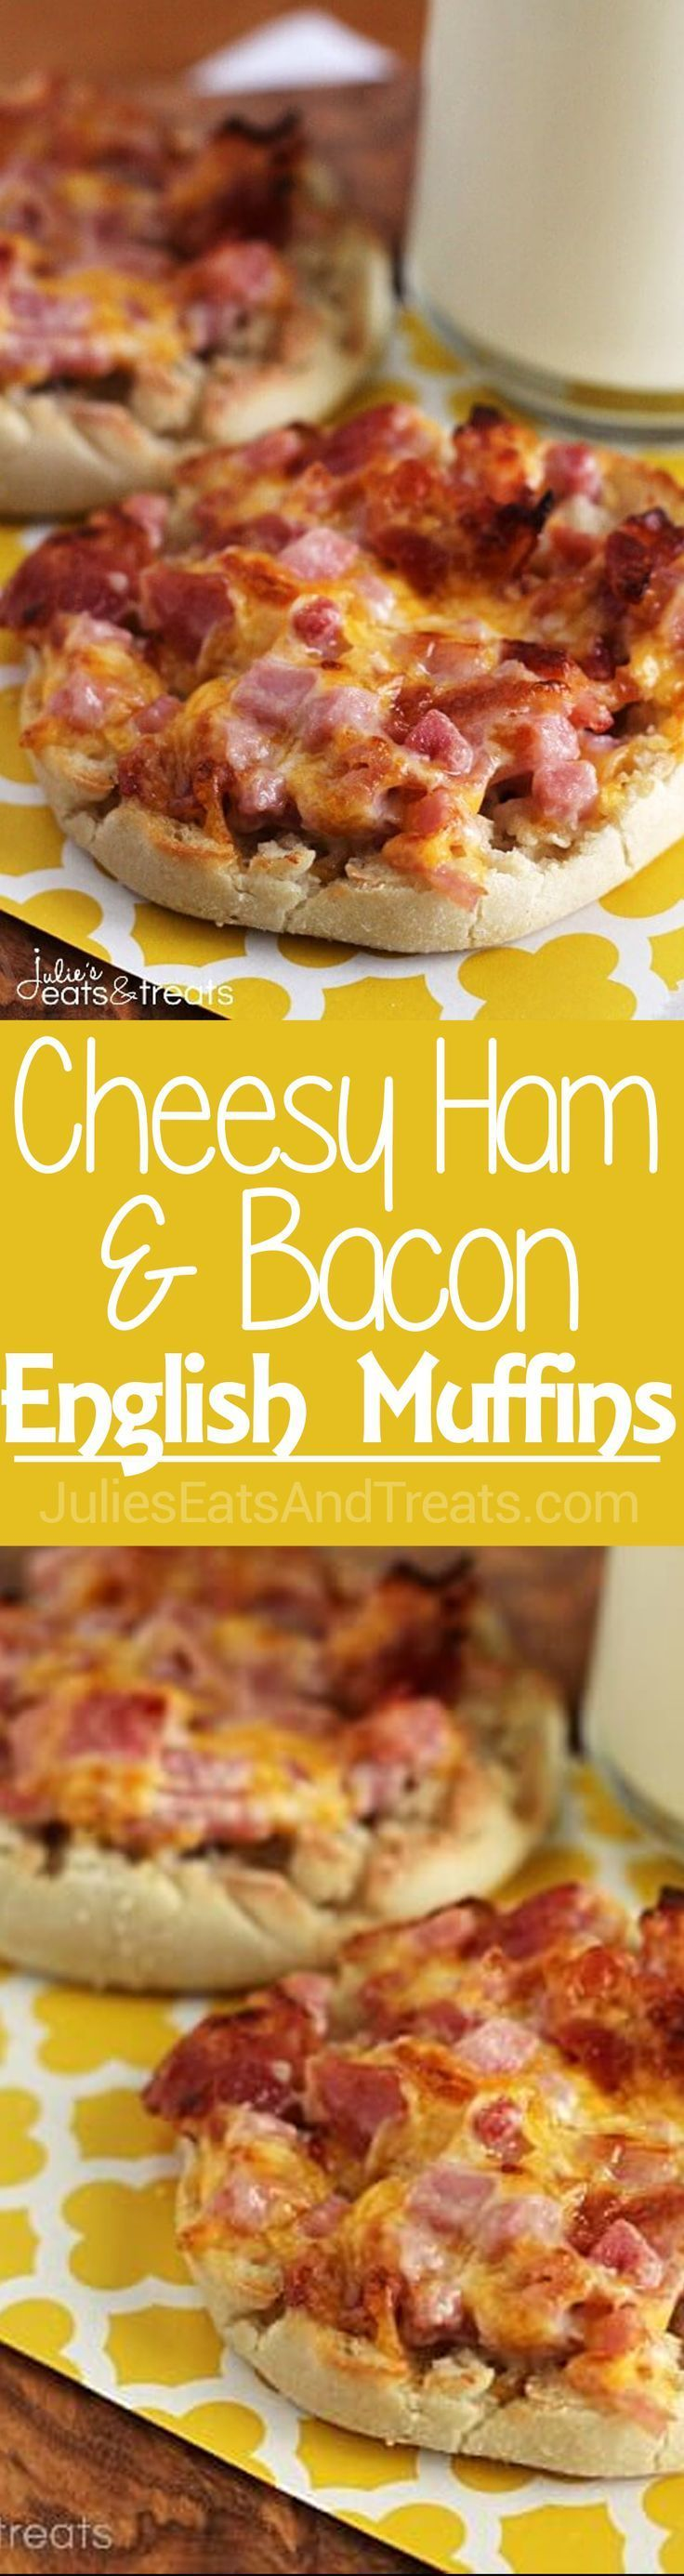 Cheesy Ham & Bacon English Muffins ~ Super Easy Breakfast for Mornings on the Go! English Muffin Loaded with Cheese, Ham & Bacon! via /julieseats/